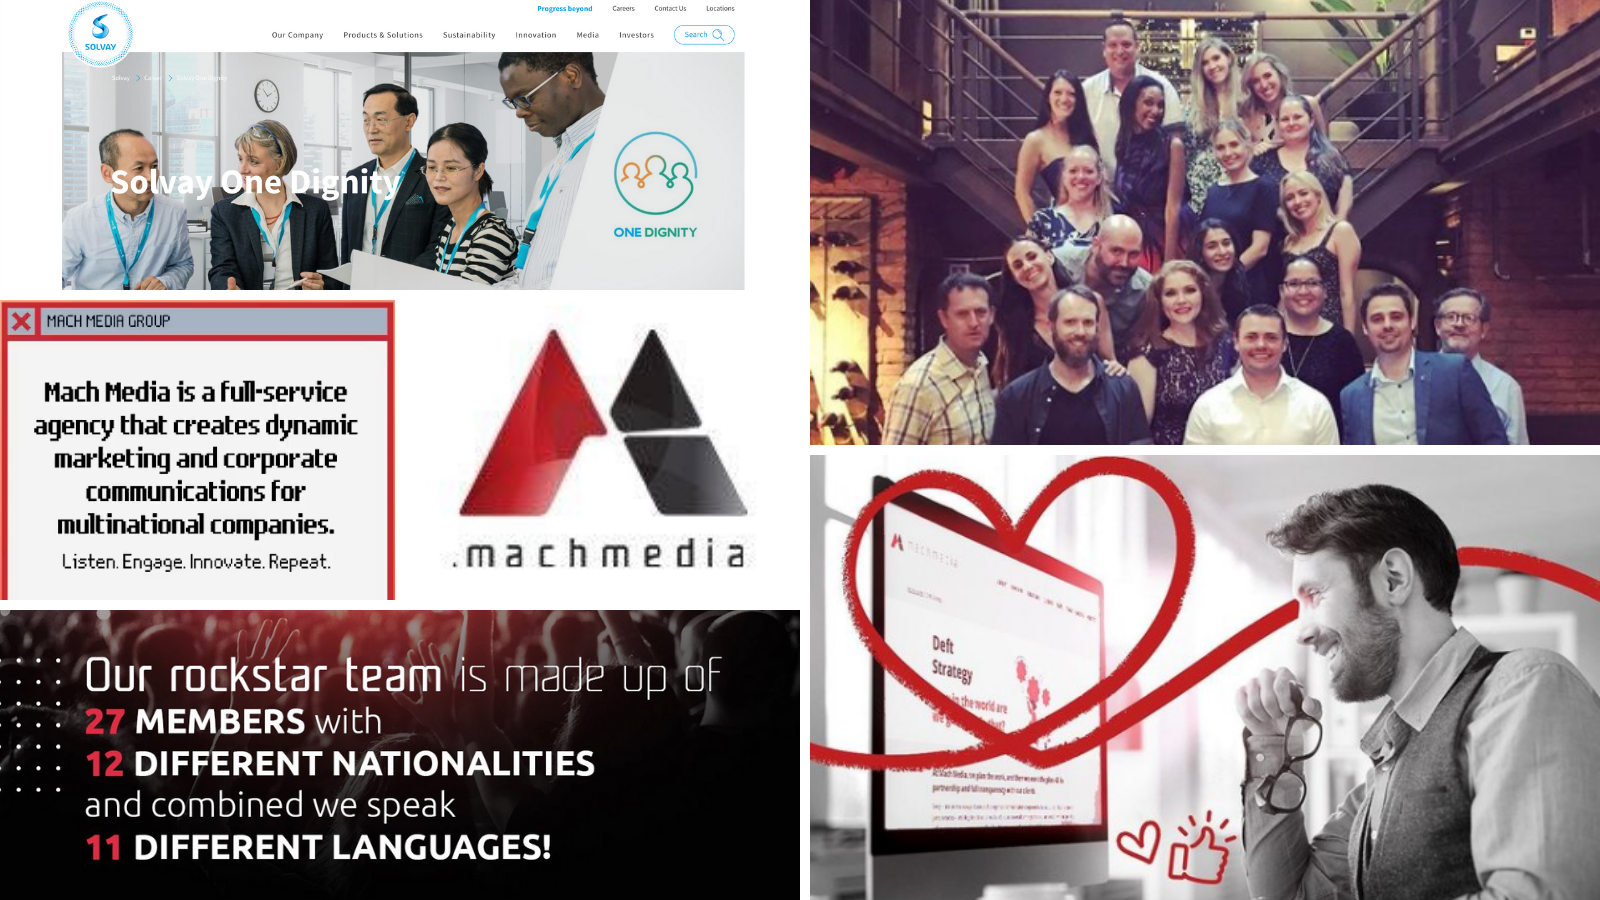 Worldwide Partners Adds New Independent Agency Partner Mach Media to Network